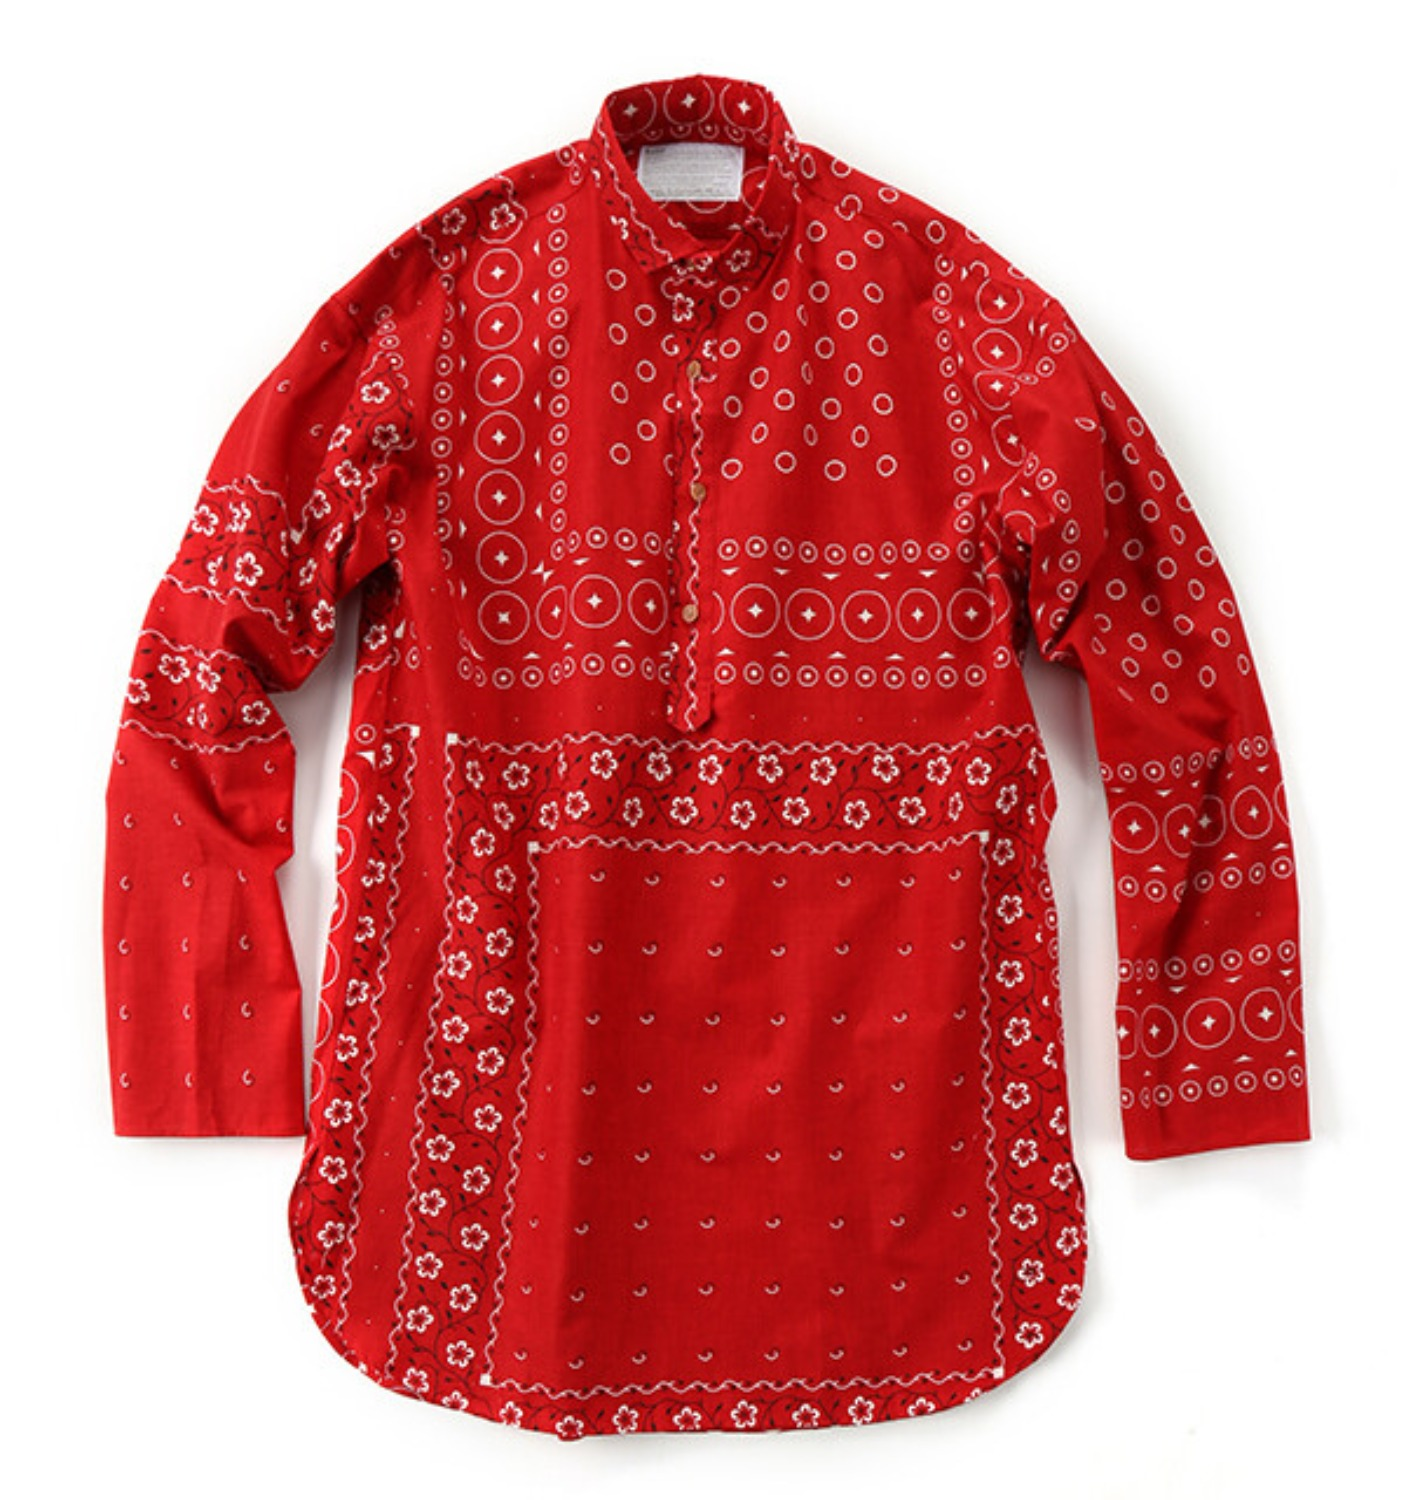 19WCM-B03114 LONG SLEEVE PULLOVER SHIRT RED